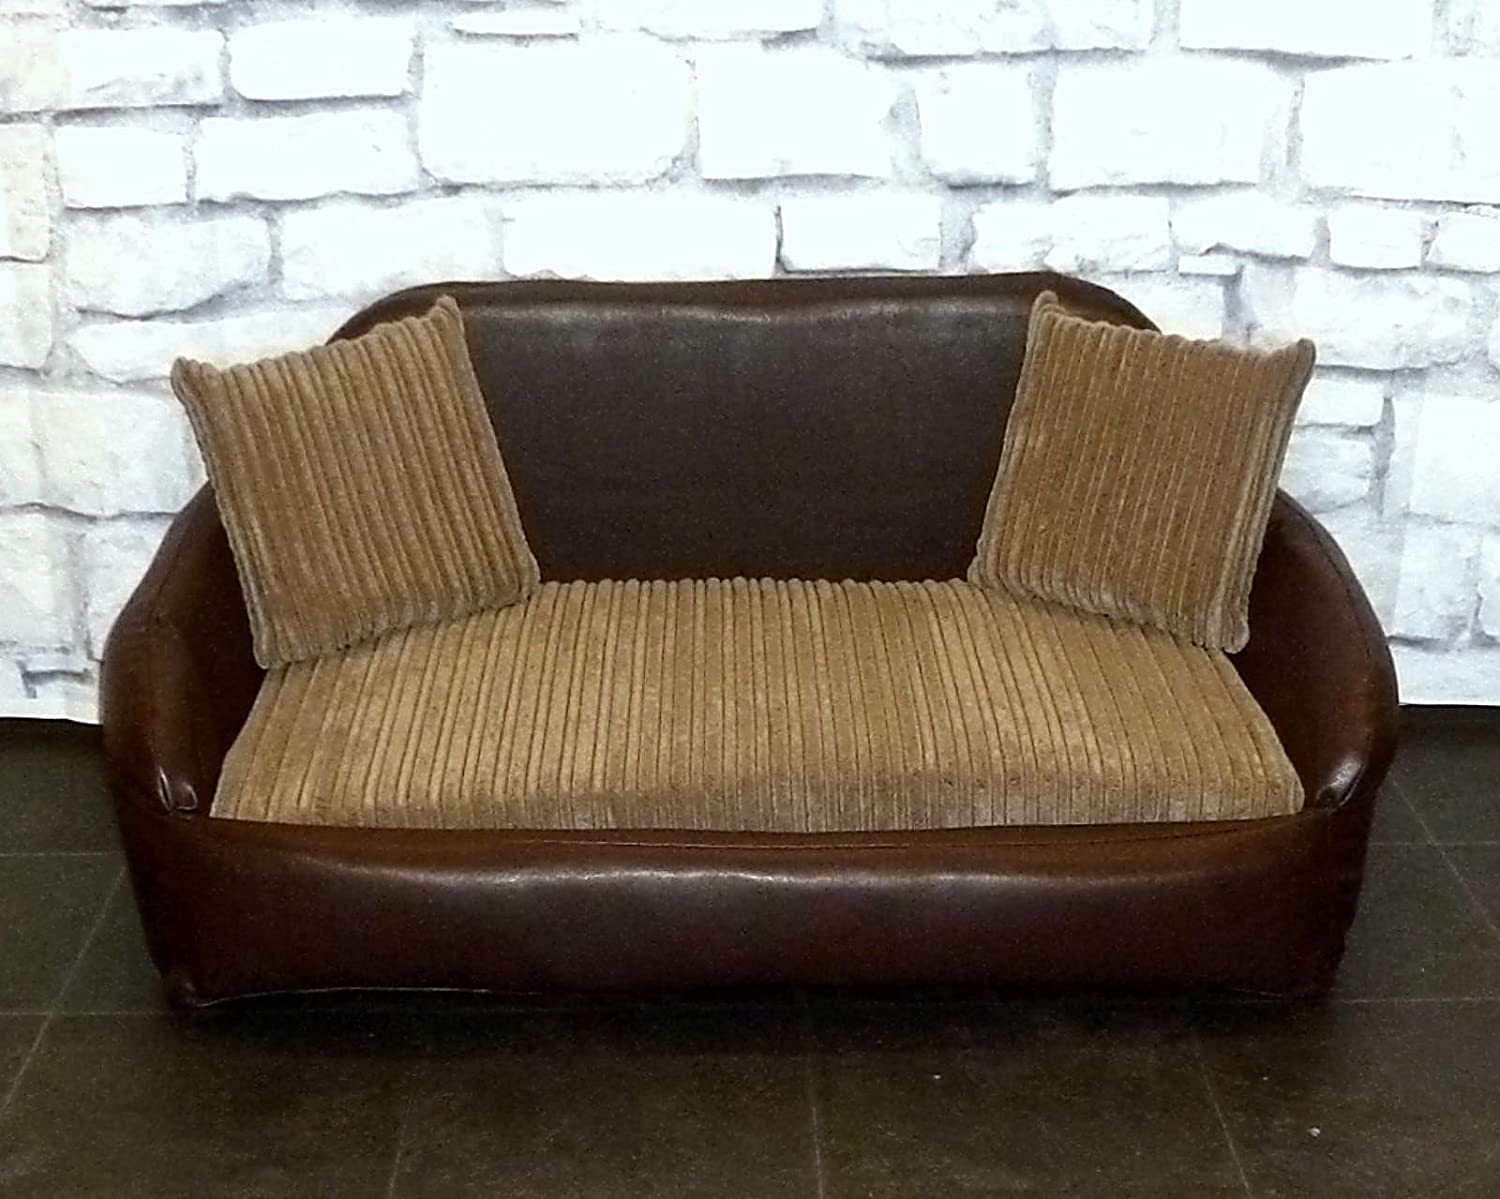 Fabulous Zippy Small Sofa Dog Bed Brown Faux Leather Mocha Chunky Cord Wipe Wash Clean Forskolin Free Trial Chair Design Images Forskolin Free Trialorg